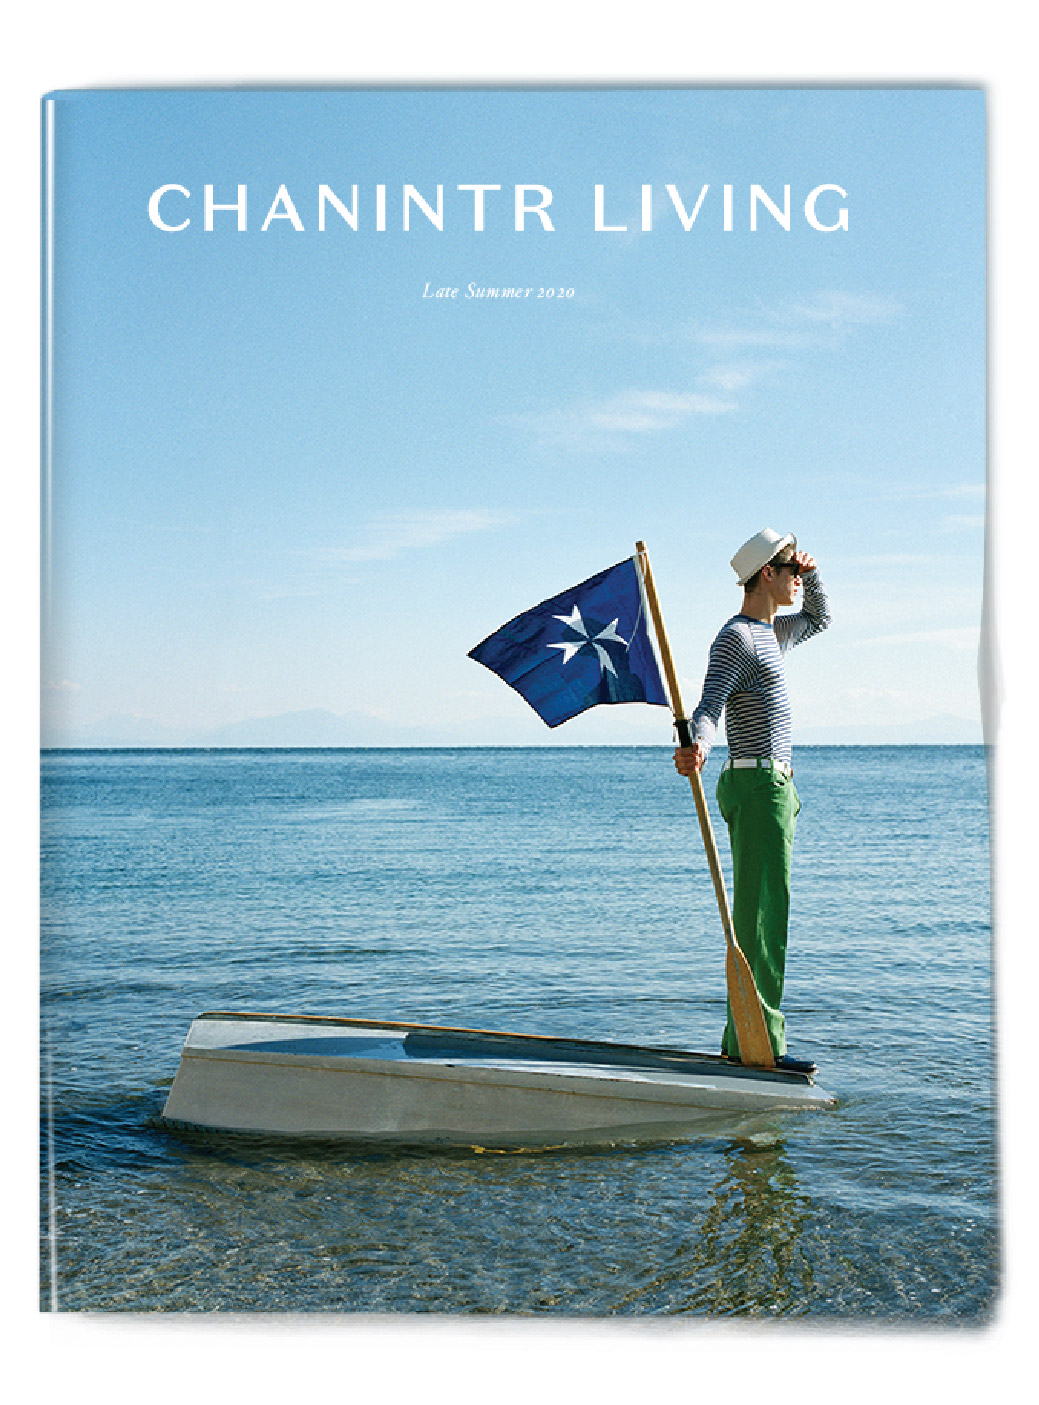 CHANINTR LIVING : Late Summer 2020